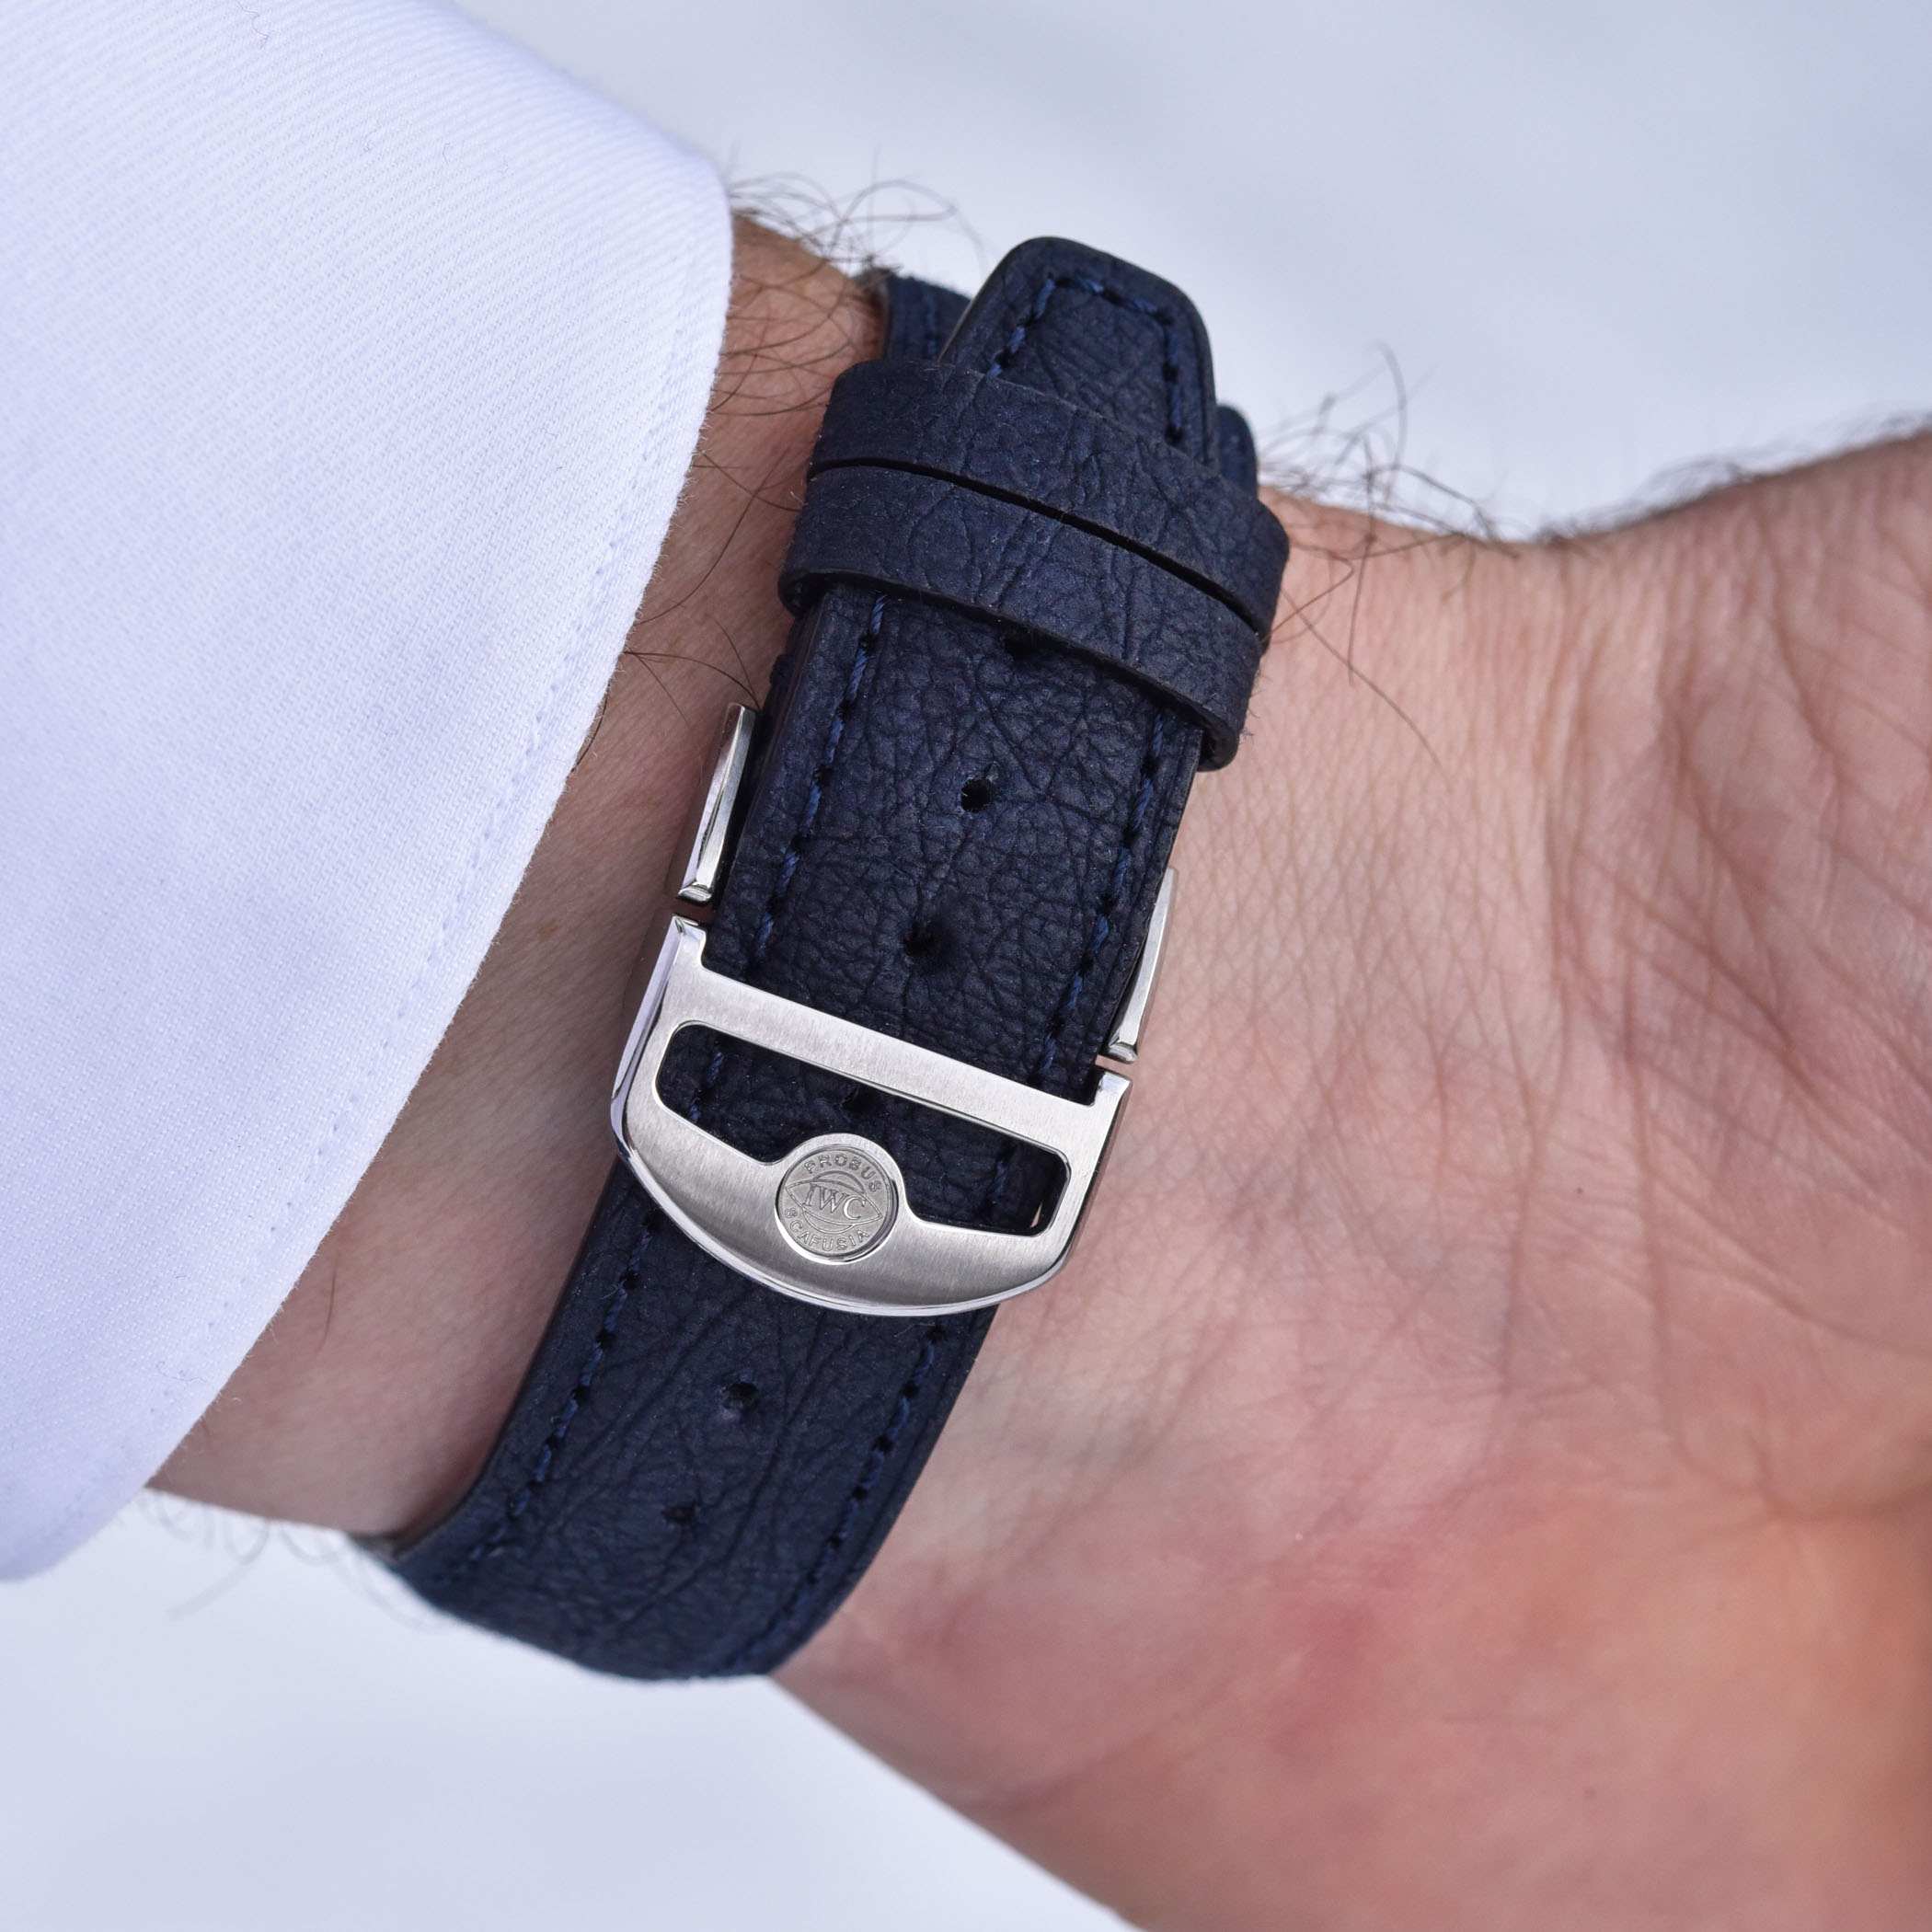 IWC TimberTex straps low- impact paper-based material